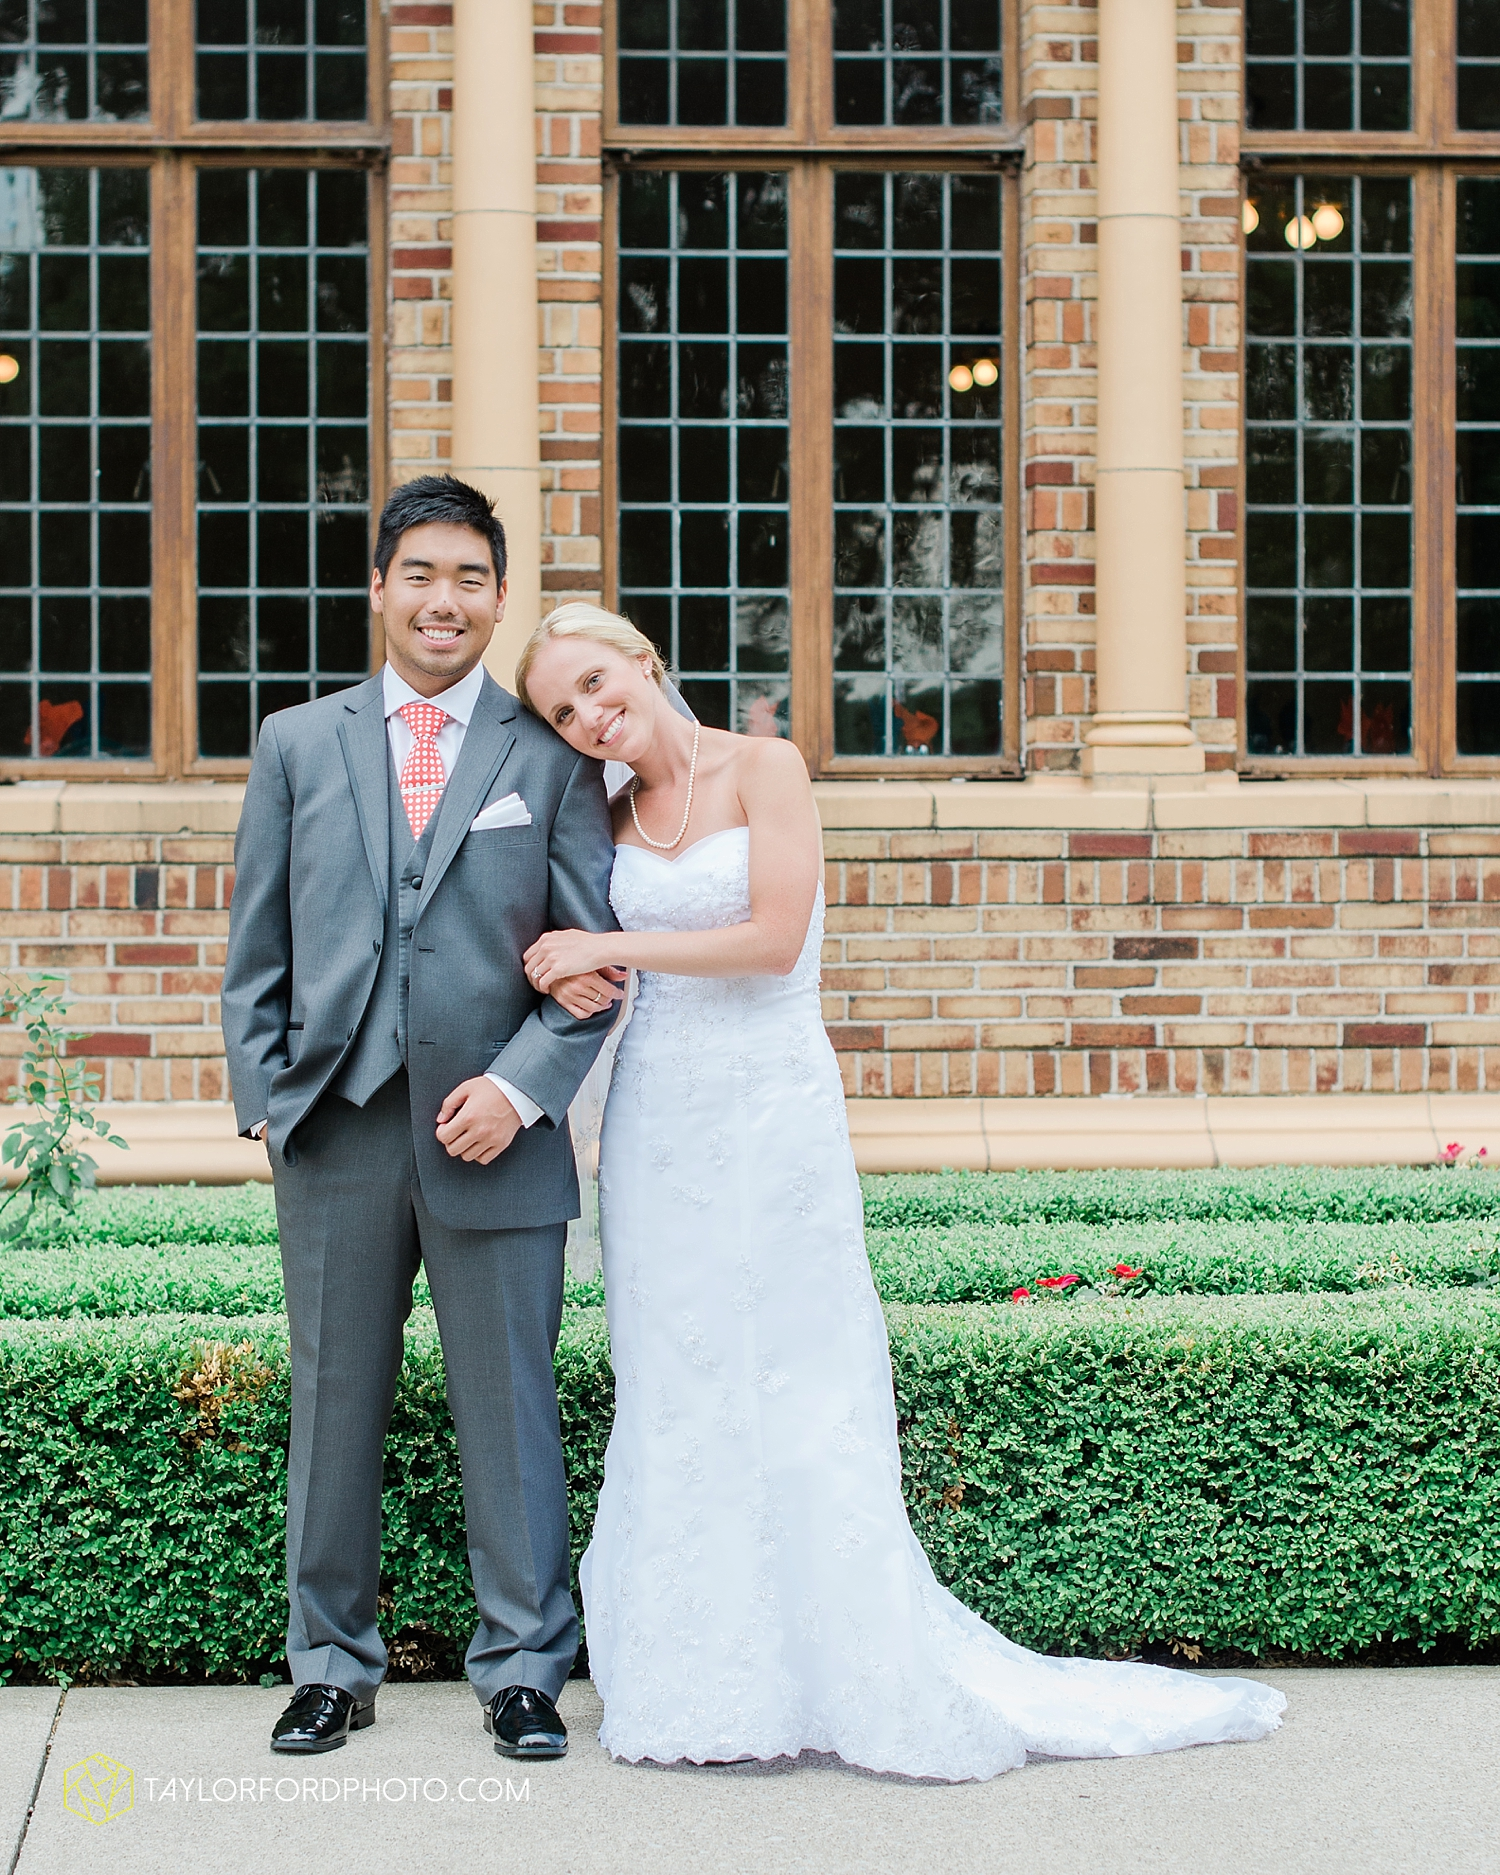 midwest_wedding_photography_taylor_ford_0506.jpg